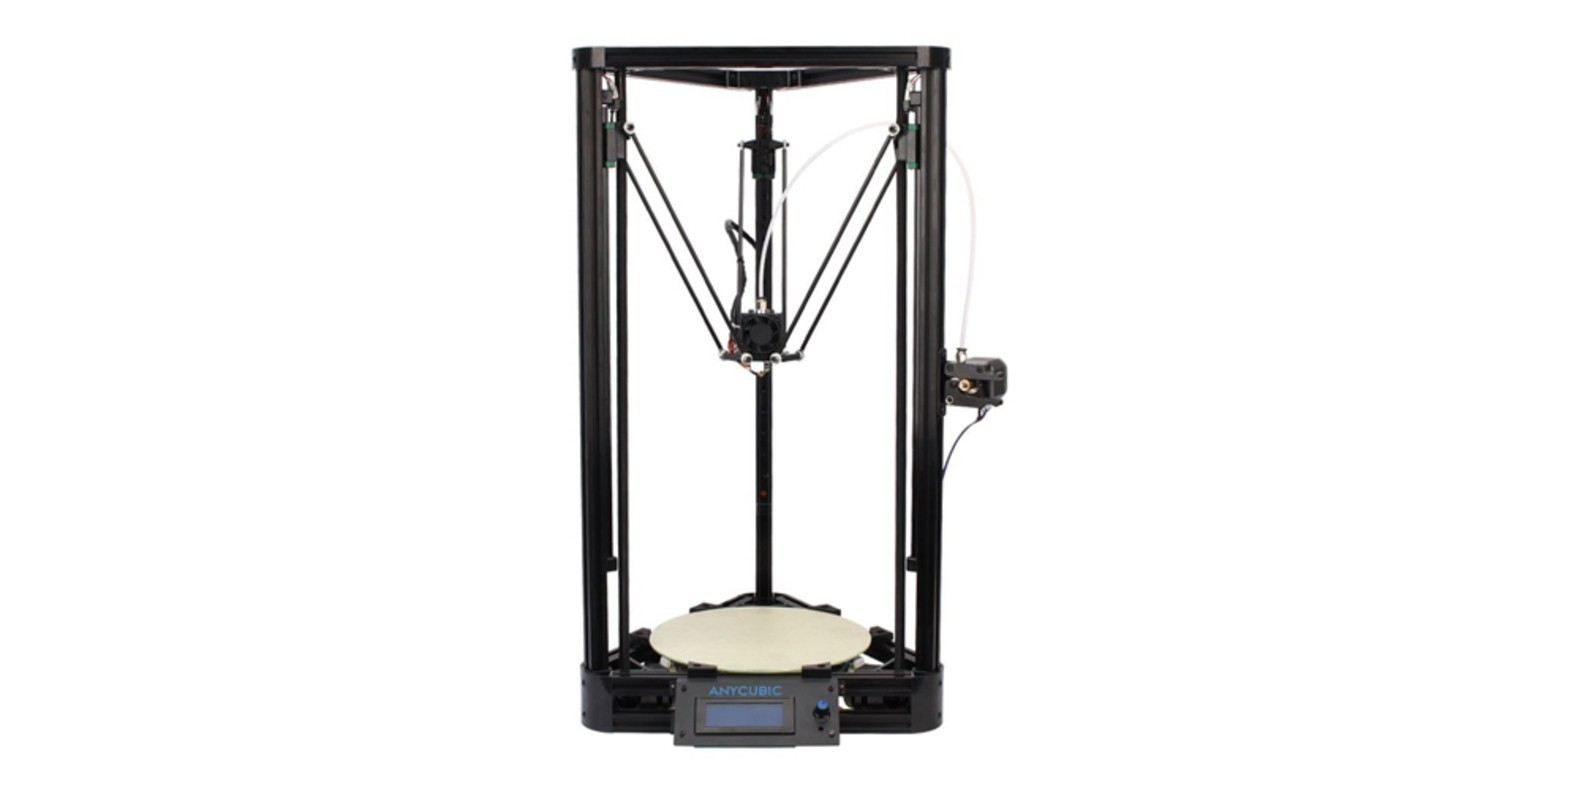 Anycubic Kossel 3D Printer